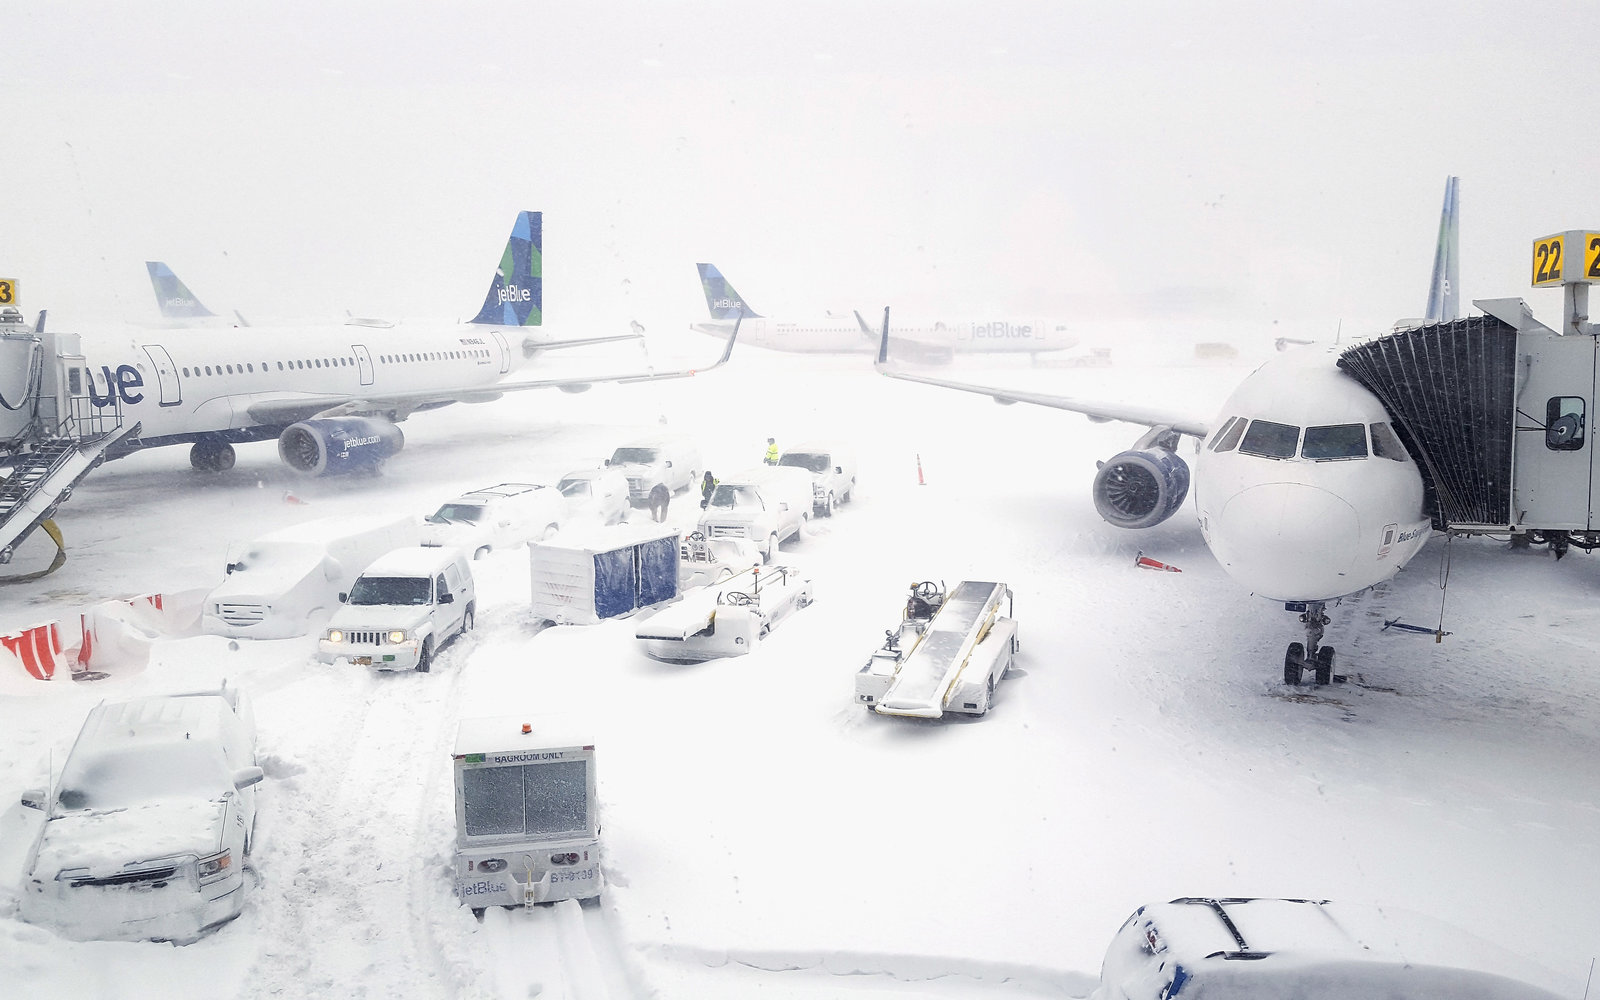 JFK Airport Winter Storm Grayson